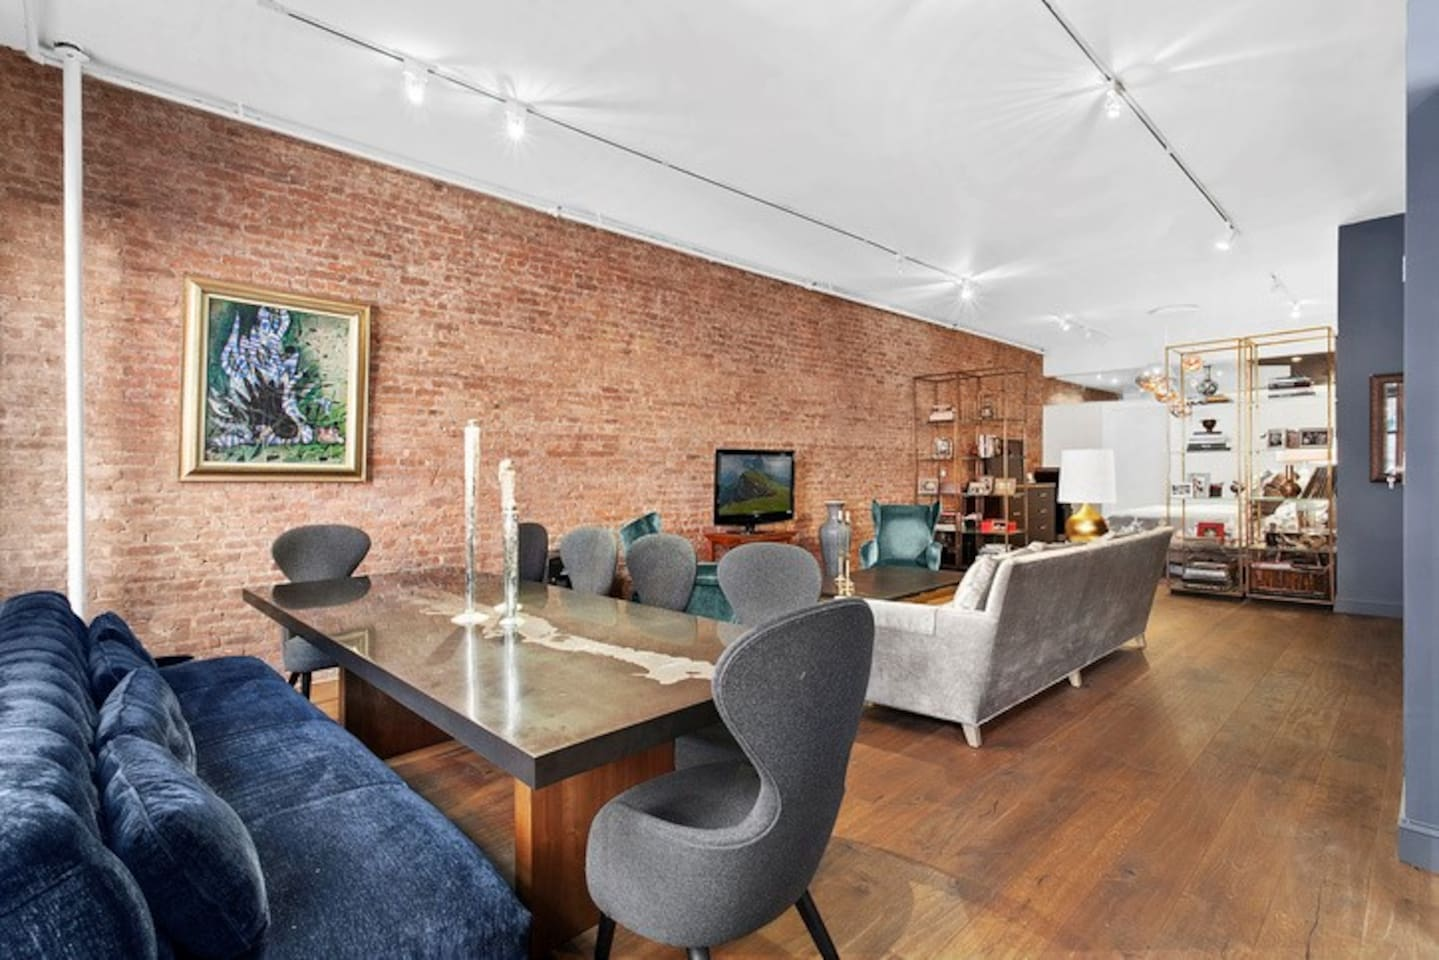 spacious living/dining area with 13 foot ceilings